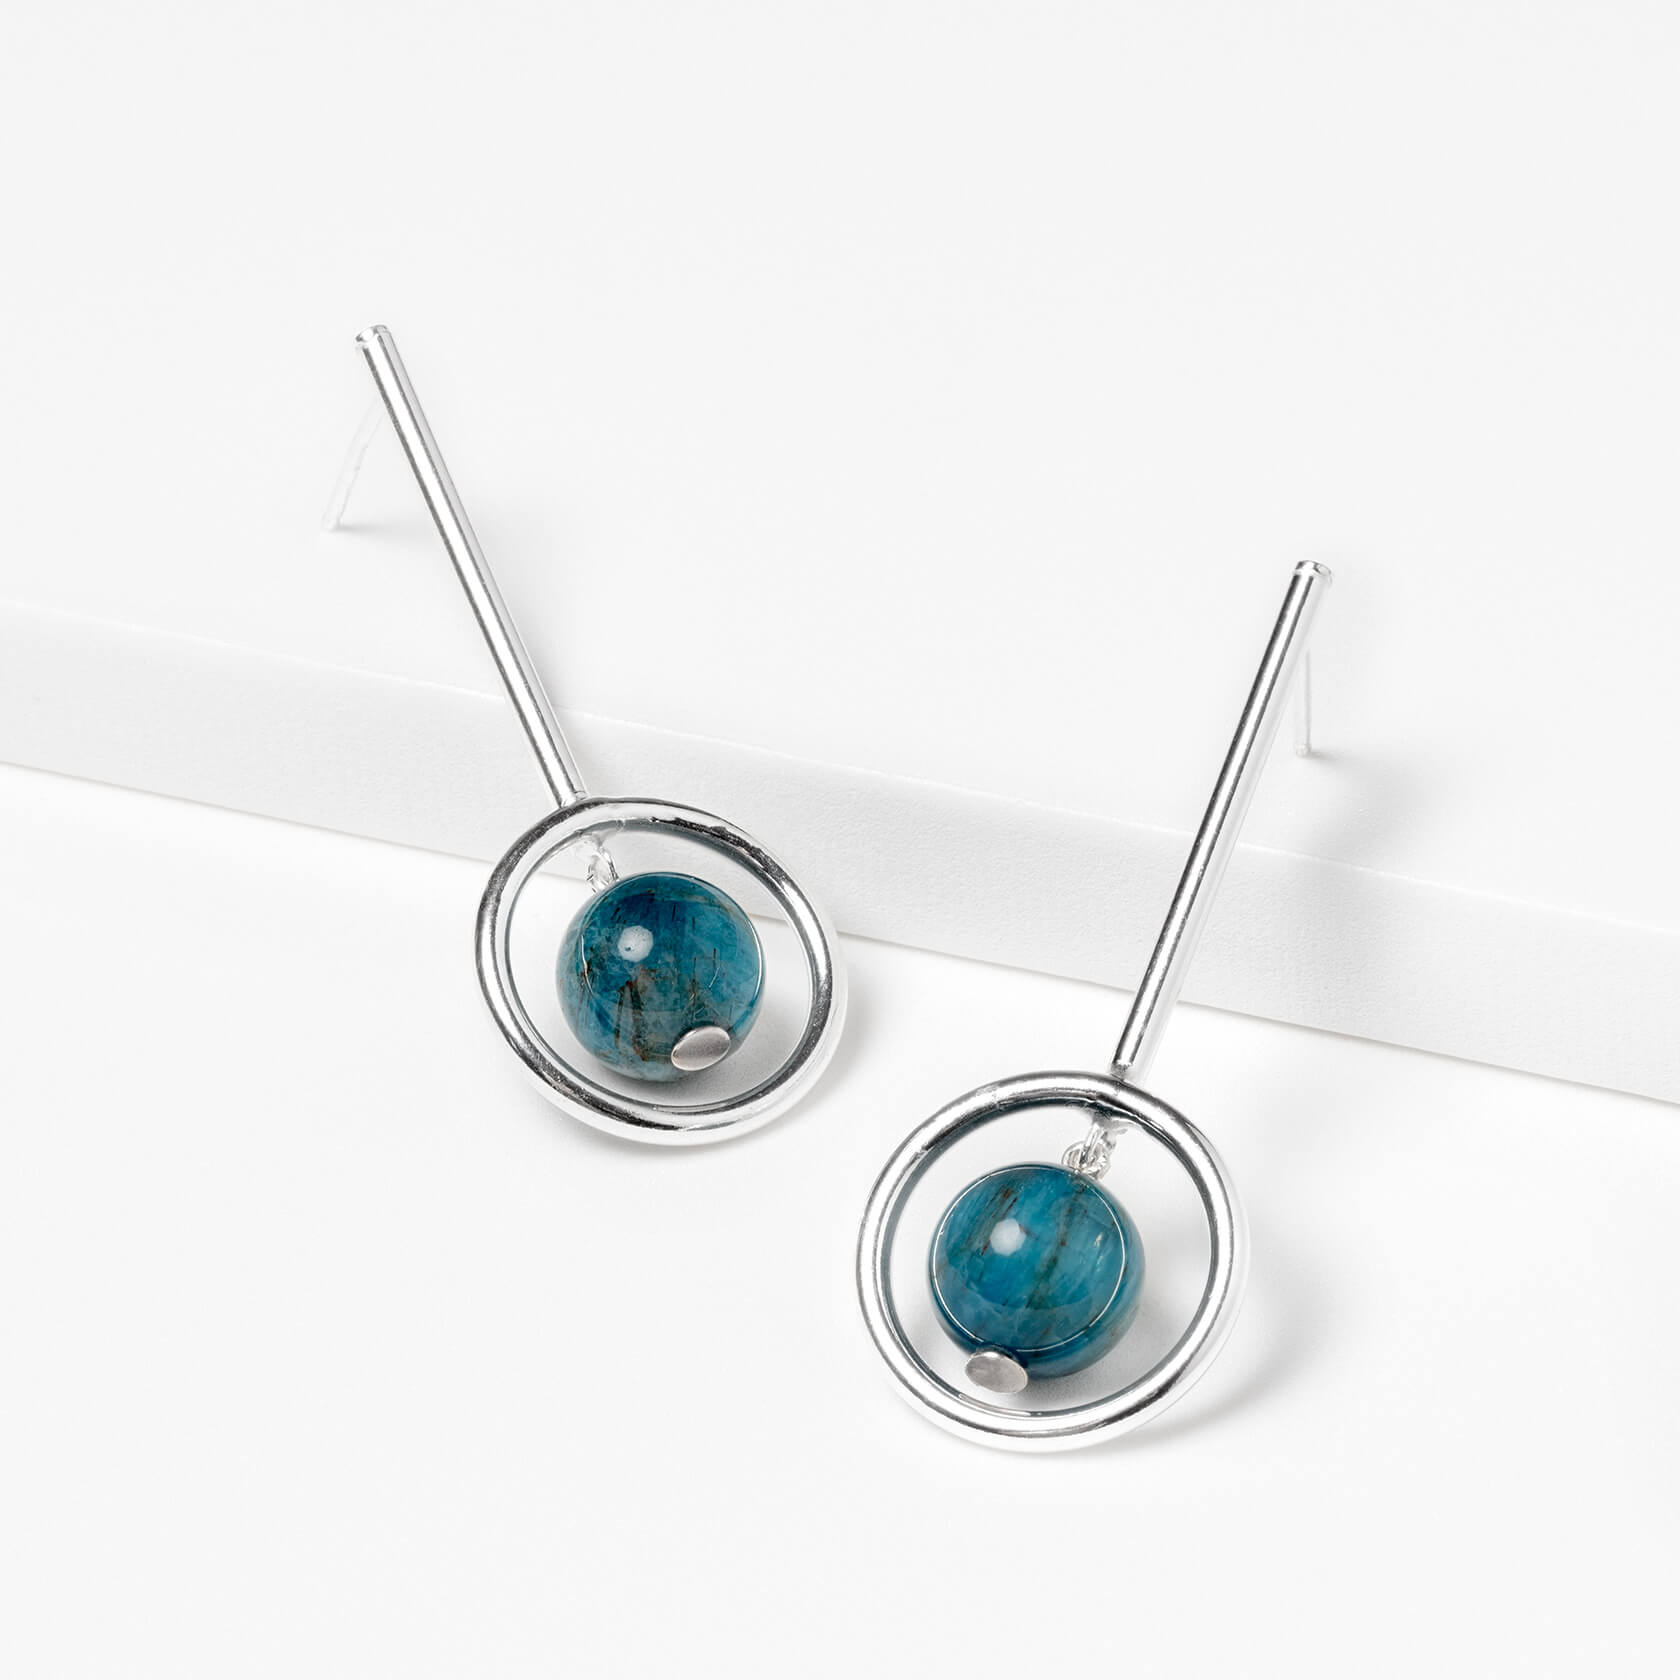 Blue apatite and silver earrings